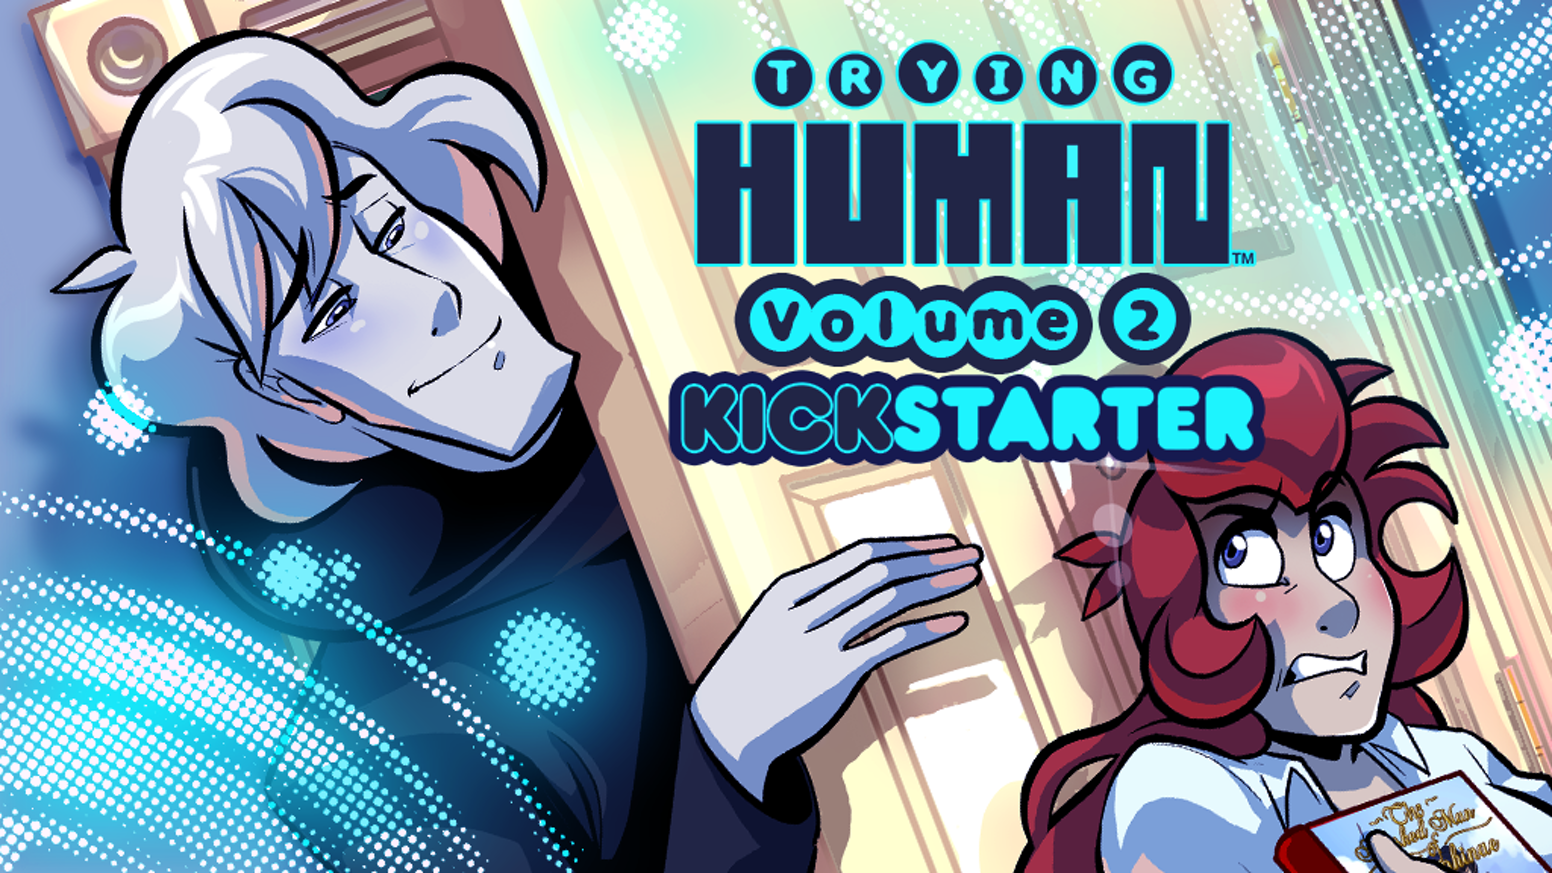 A webcomic filled with romance, aliens, and mystery is ready to make a second jump to print!